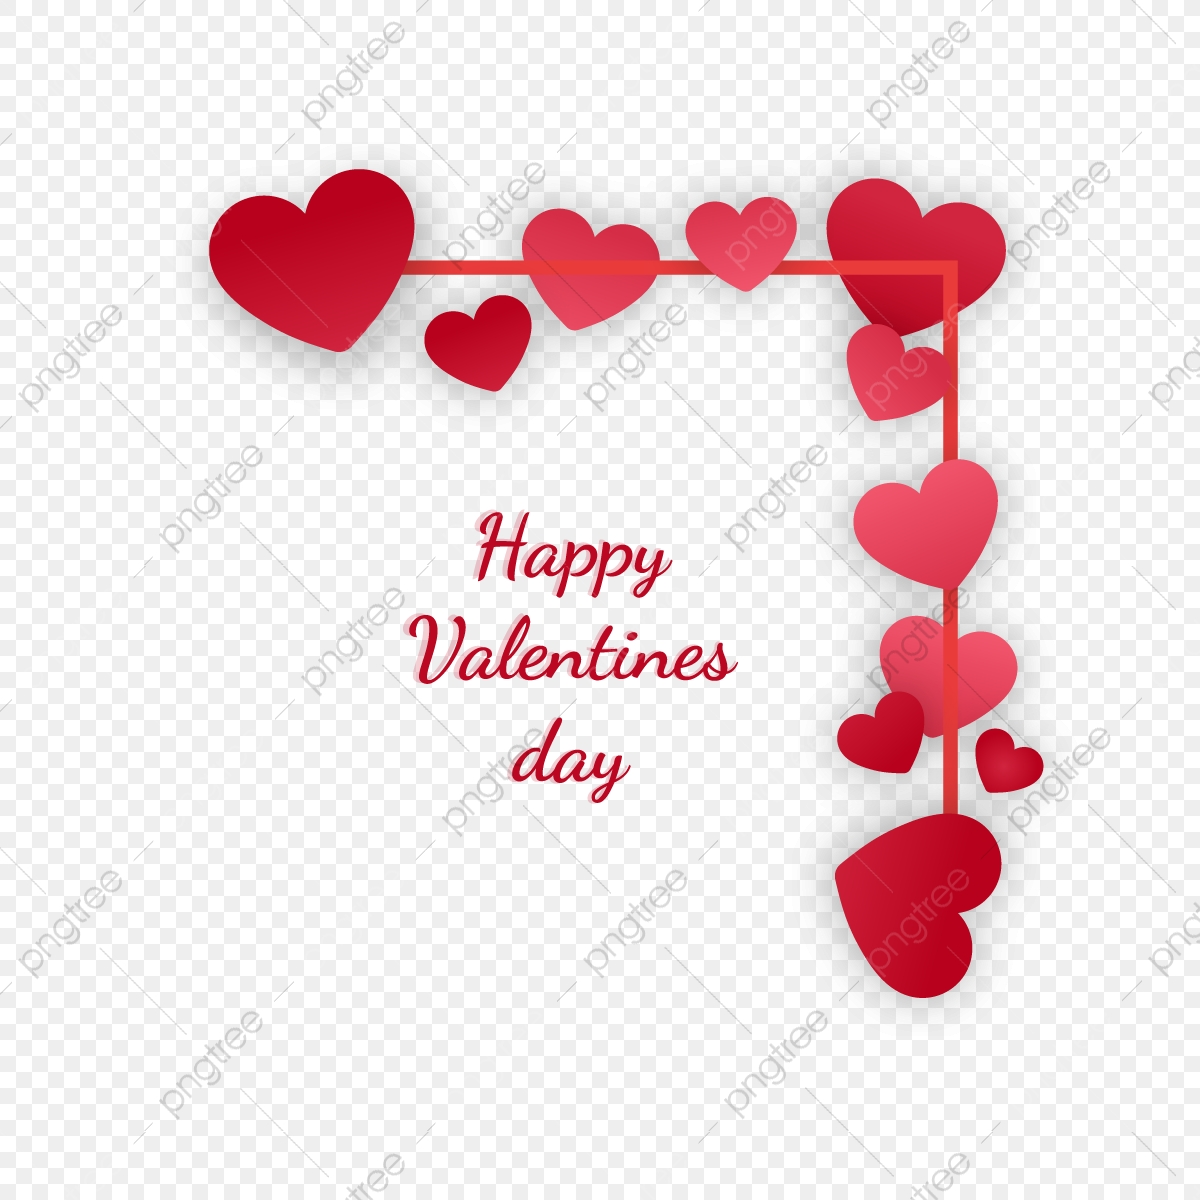 Happy Valentines Day Png Images Vector And Psd Files Free Download On Pngtree